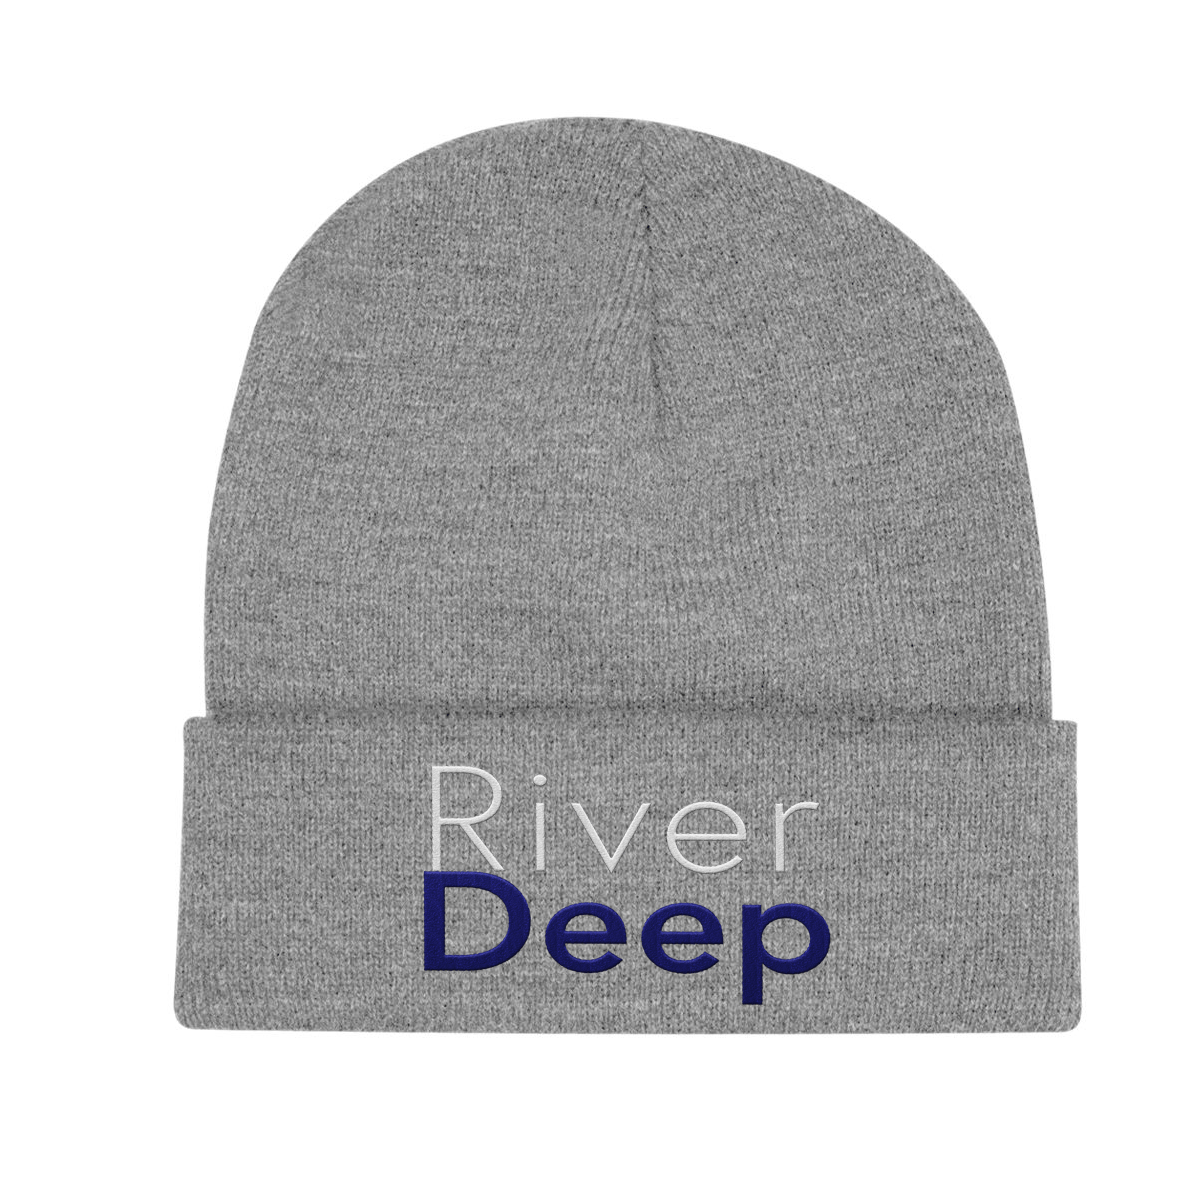 River Deep Folded Beanie